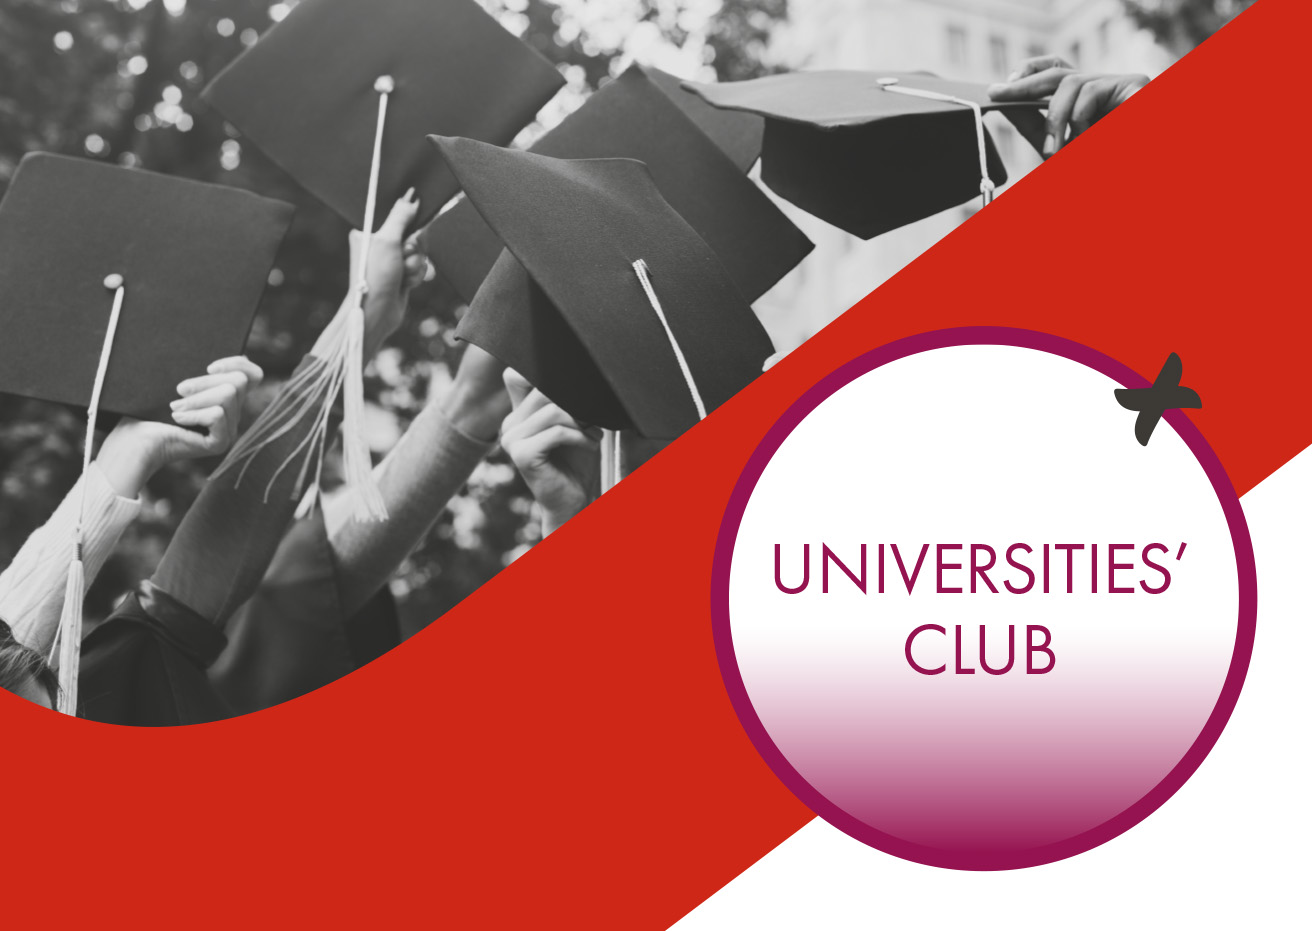 Universities Club Home Page Image